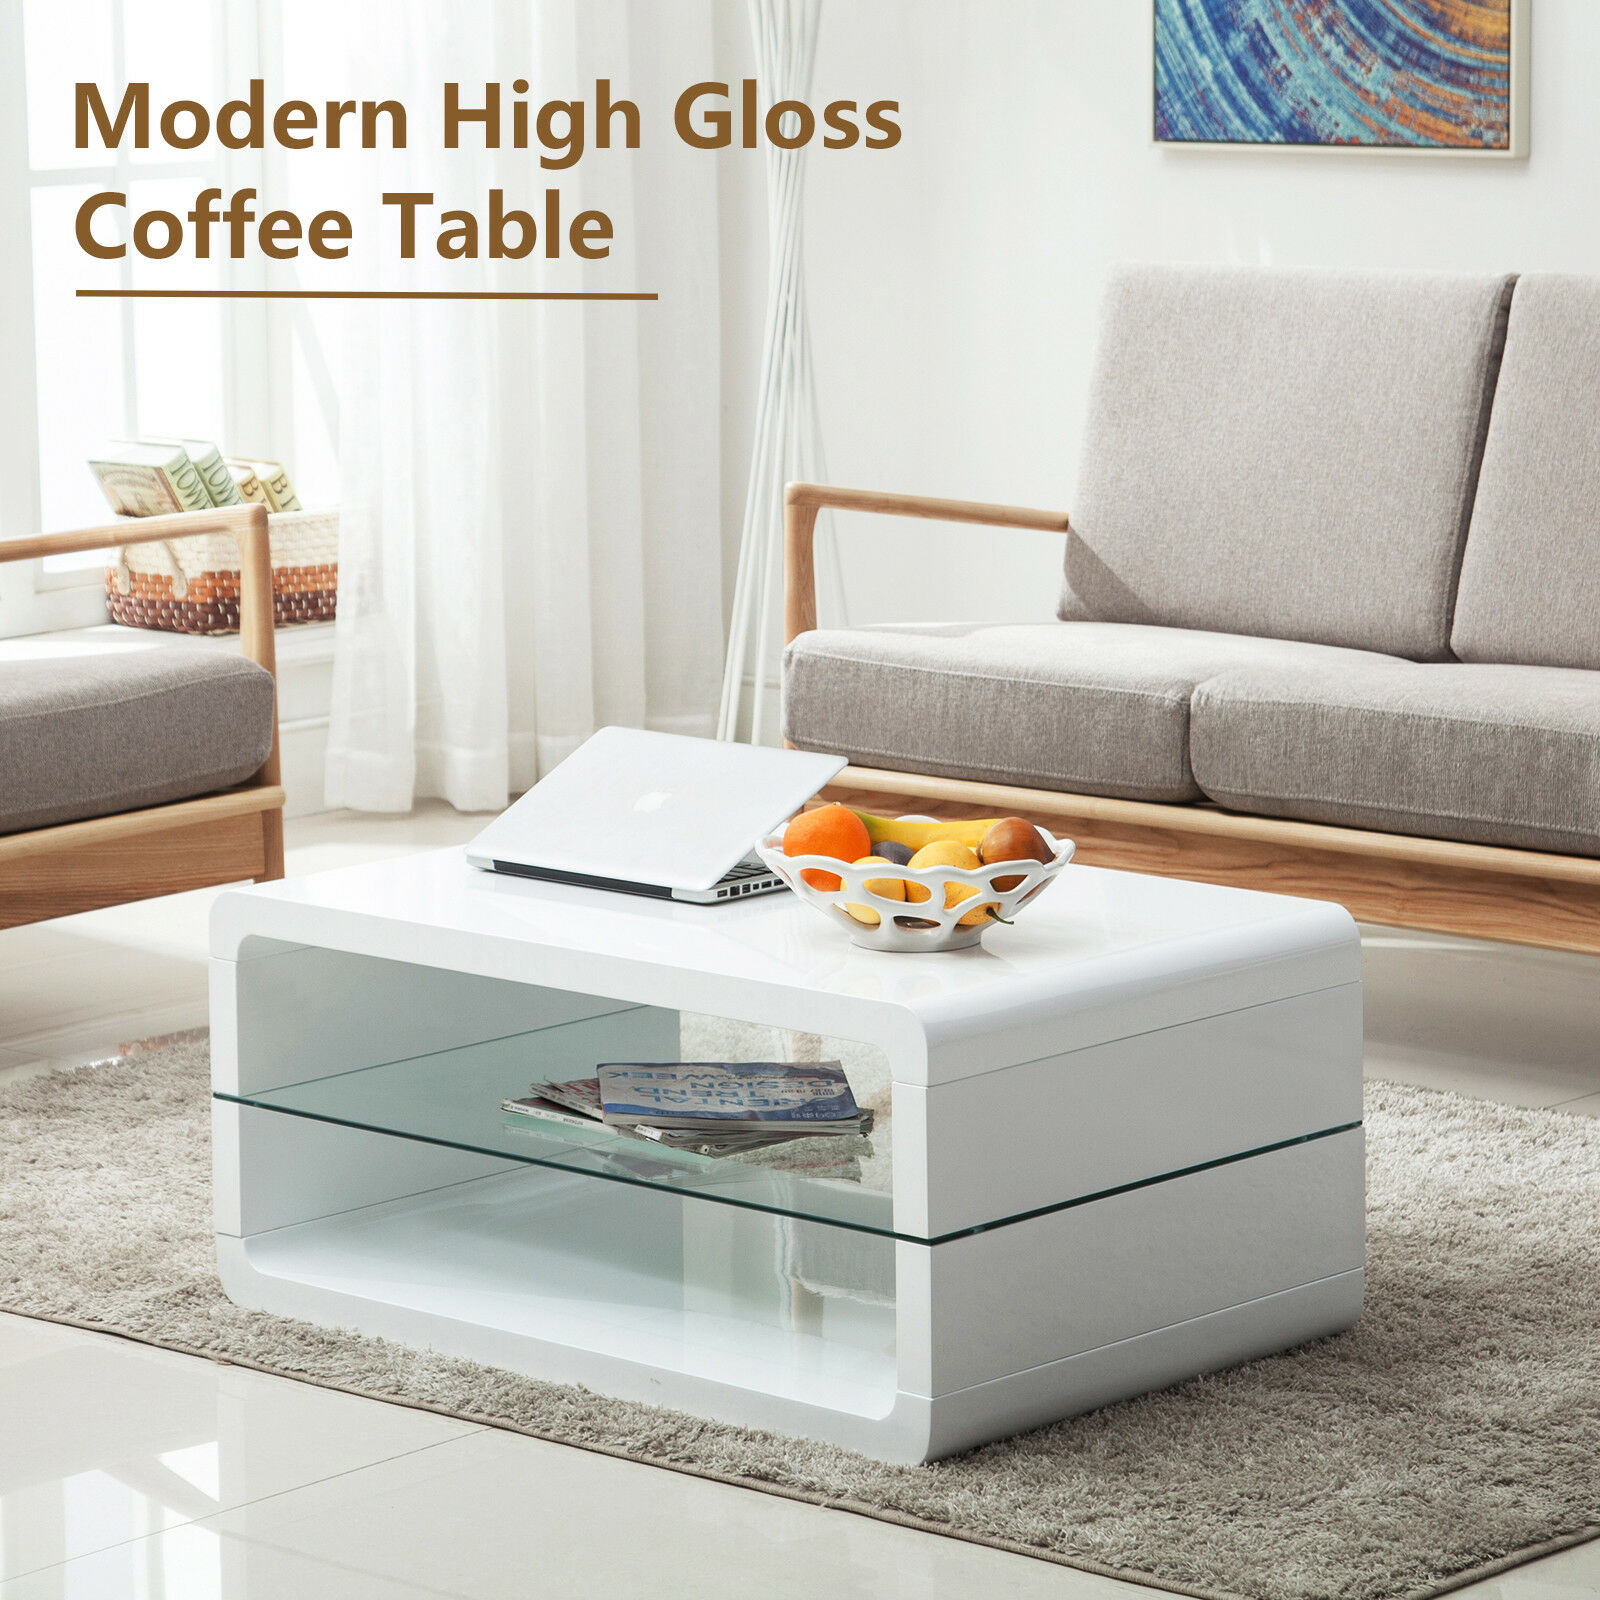 Modern High Gloss White Coffee Table Storage Space W 2 Shelves